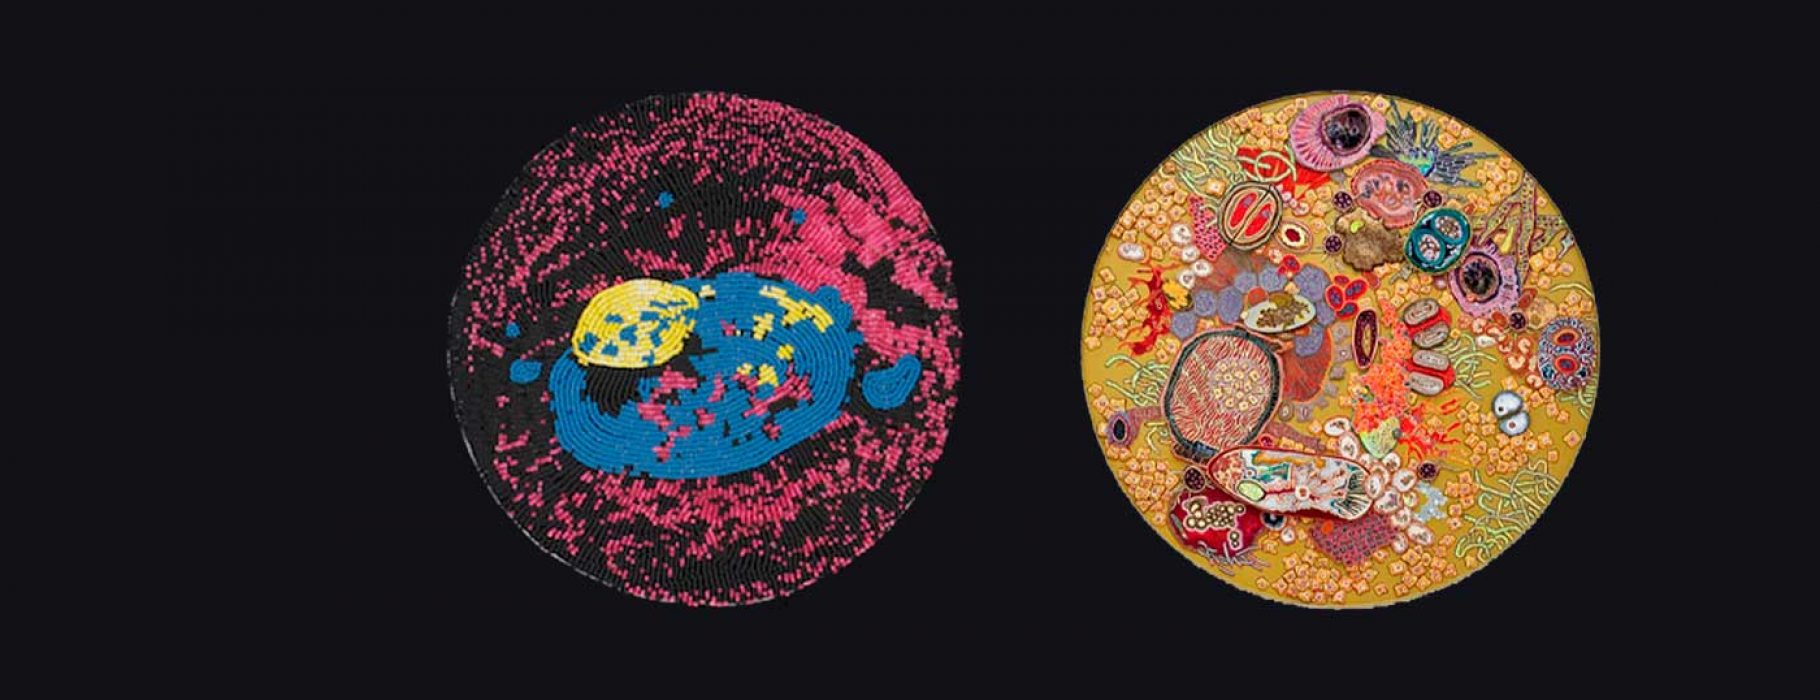 Viruses illustrated with beadwork by the artist Ruth Cuthand